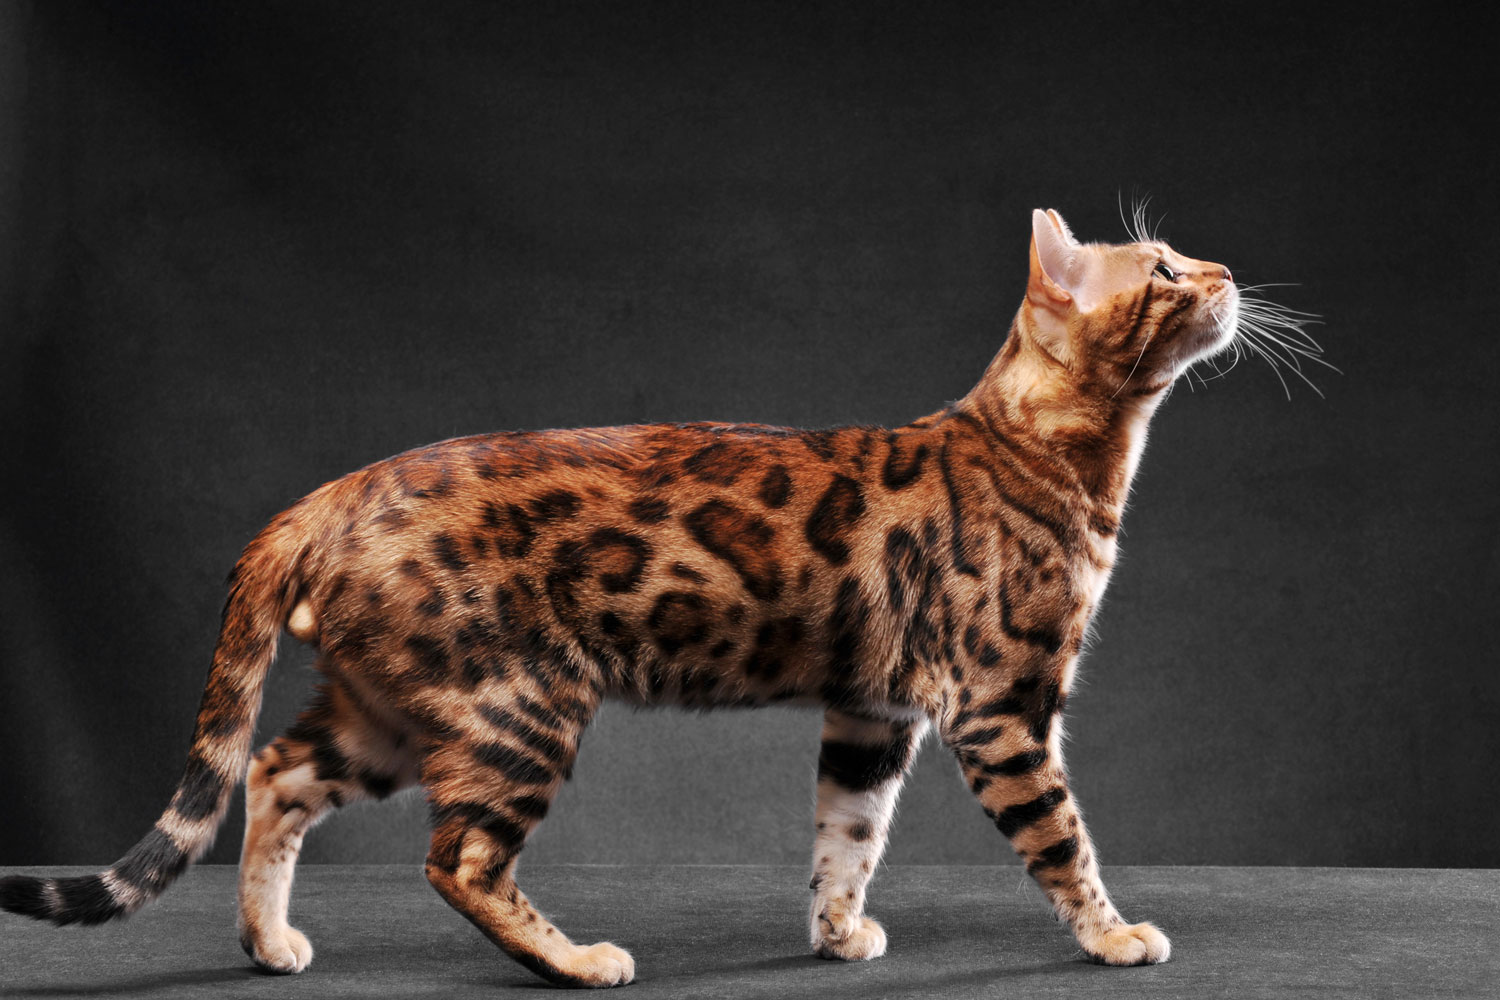 A huge Bengal cat photographed on a dark gray background